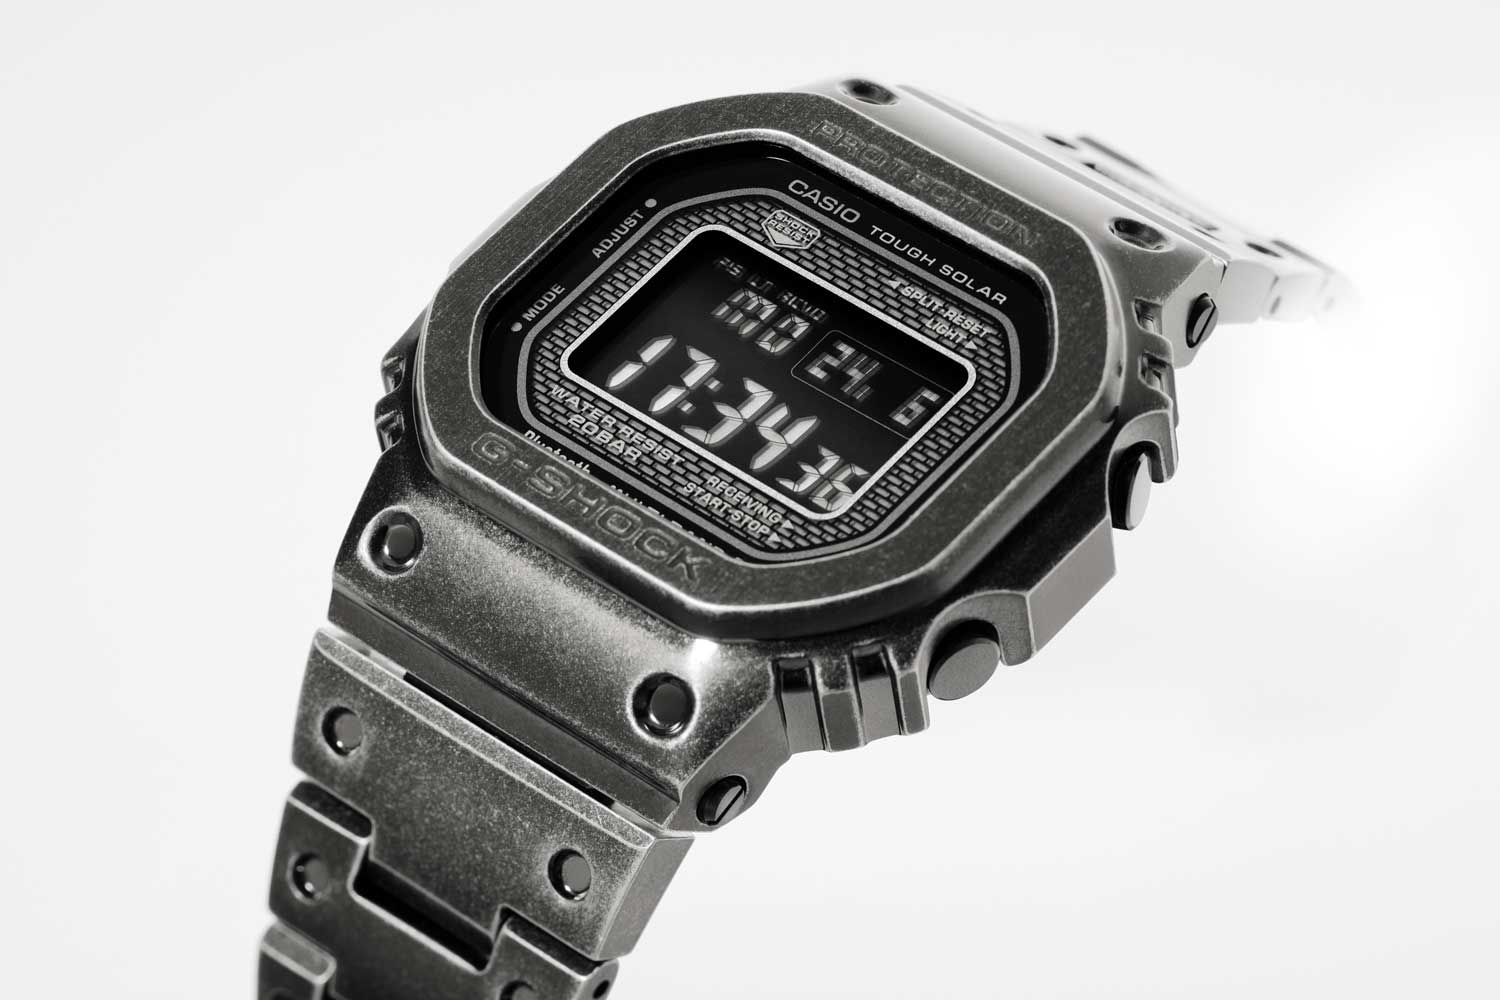 G-SHOCK GMW-B5000V Black Aged IP (Image © Revolution)